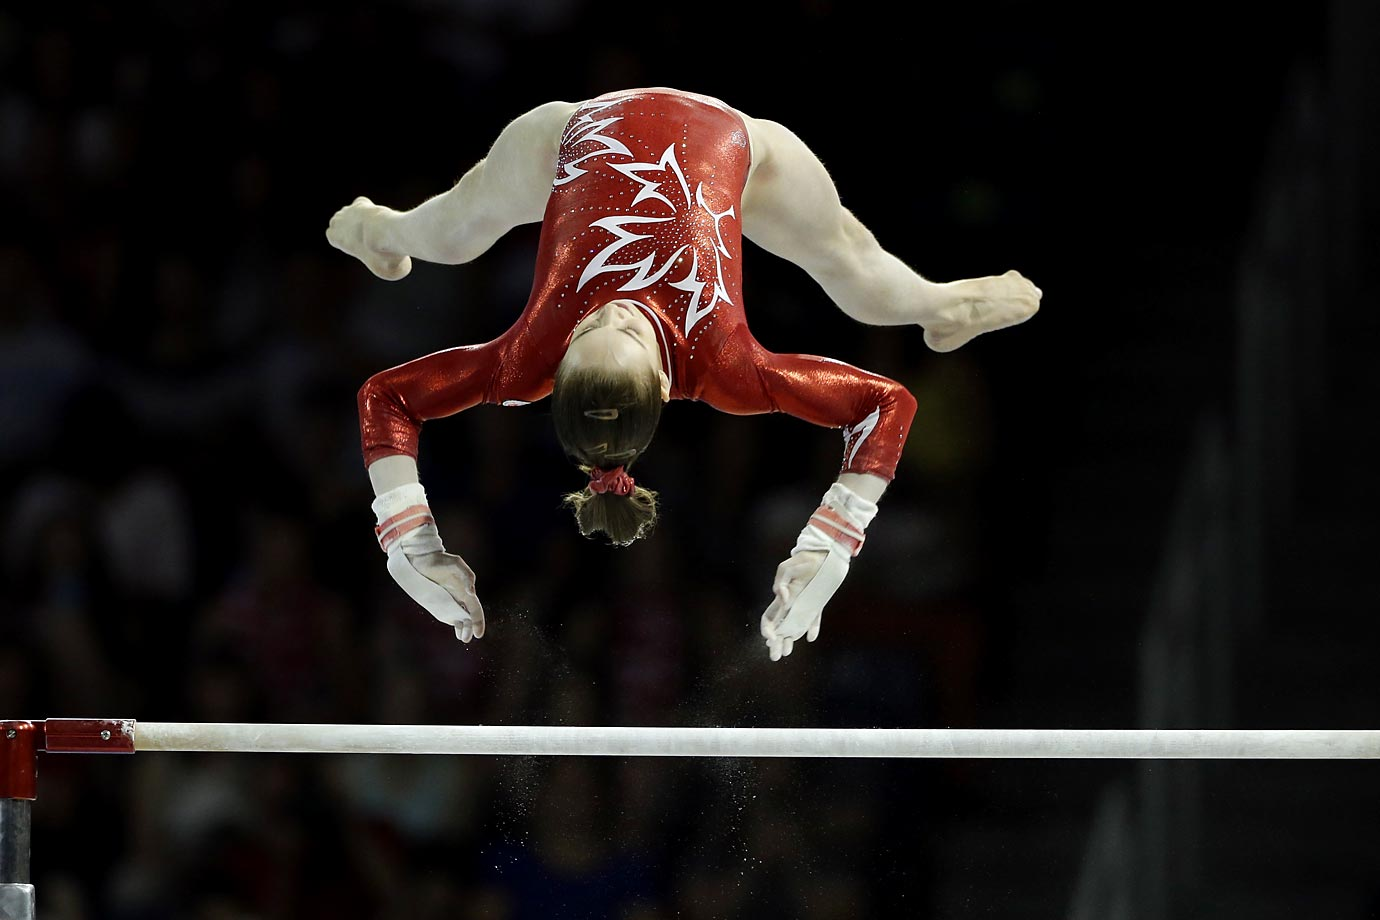 Isabela Onyshko of Canada performs on the uneven bars during women's artistic gymnastics team competition in the Pan Am Games in Toronto.